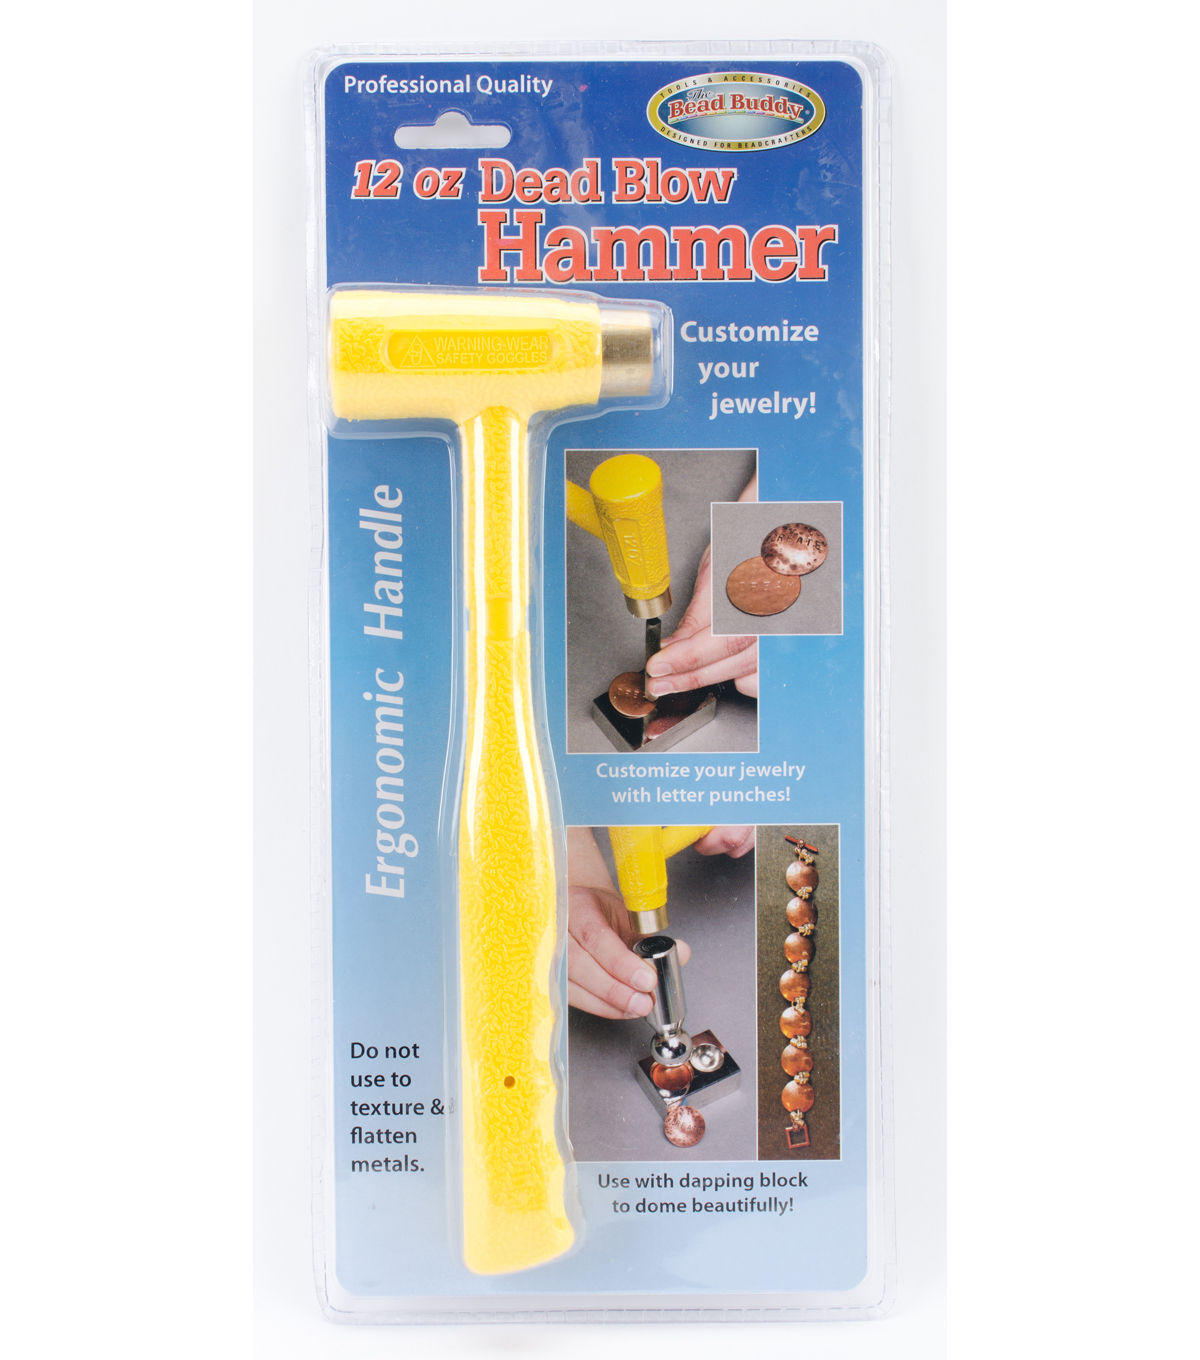 The Bead Buddy 12 oz. Dead Blow Hammer with Ergonomic Handle